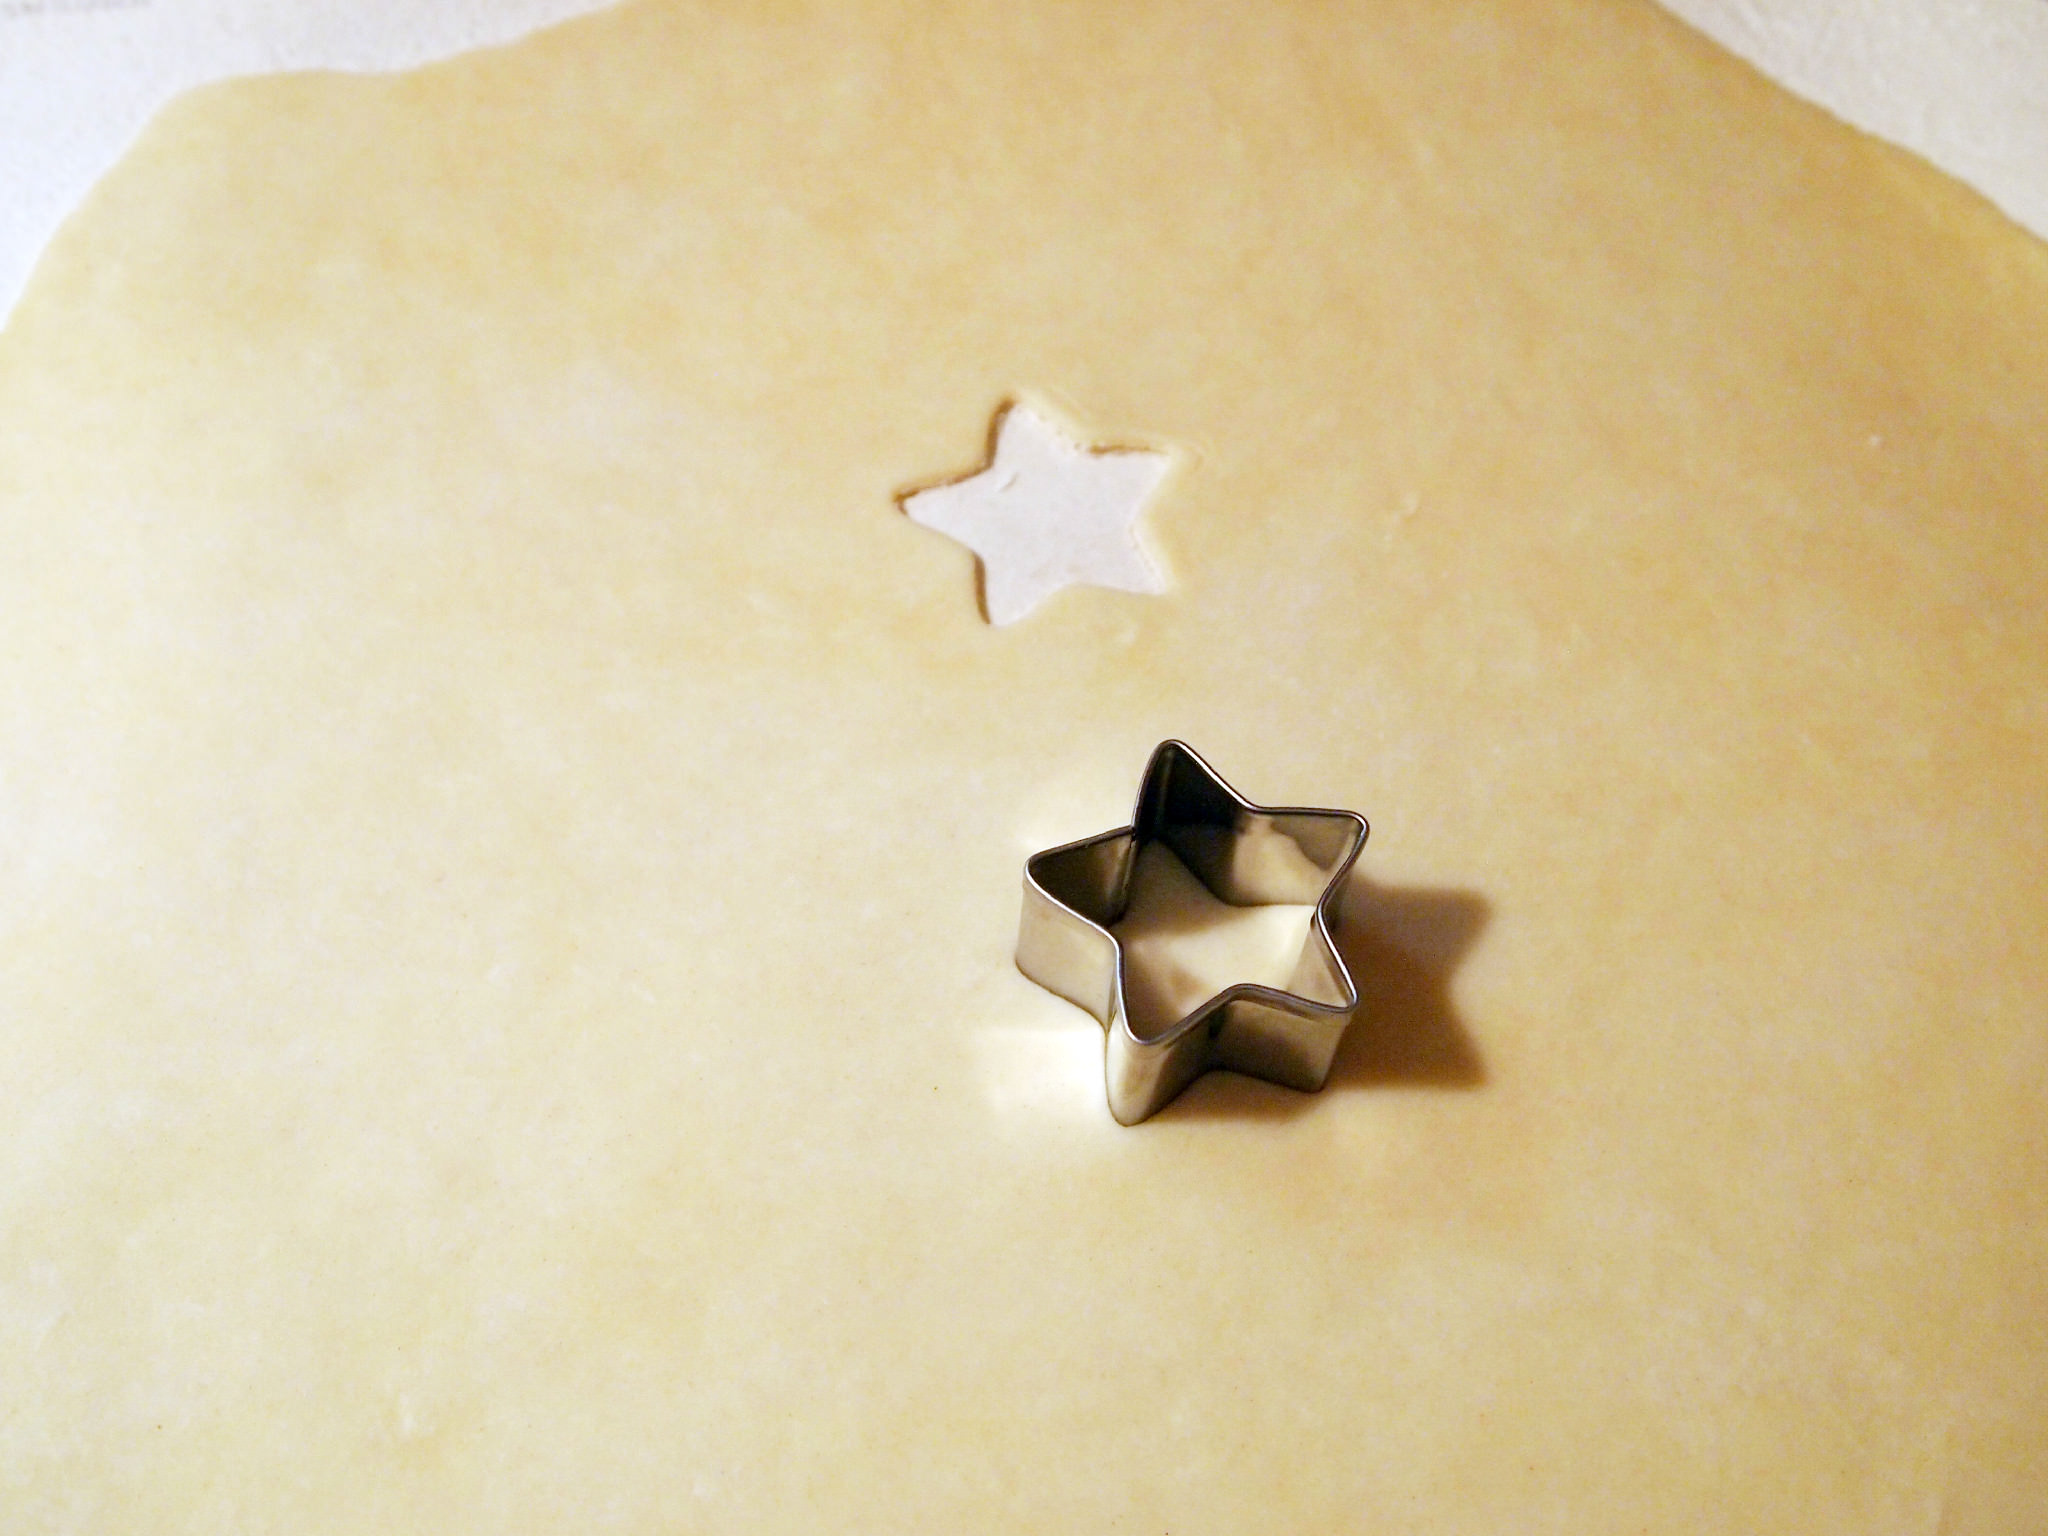 cutting stars out of pastry crust for a chicken pot pie